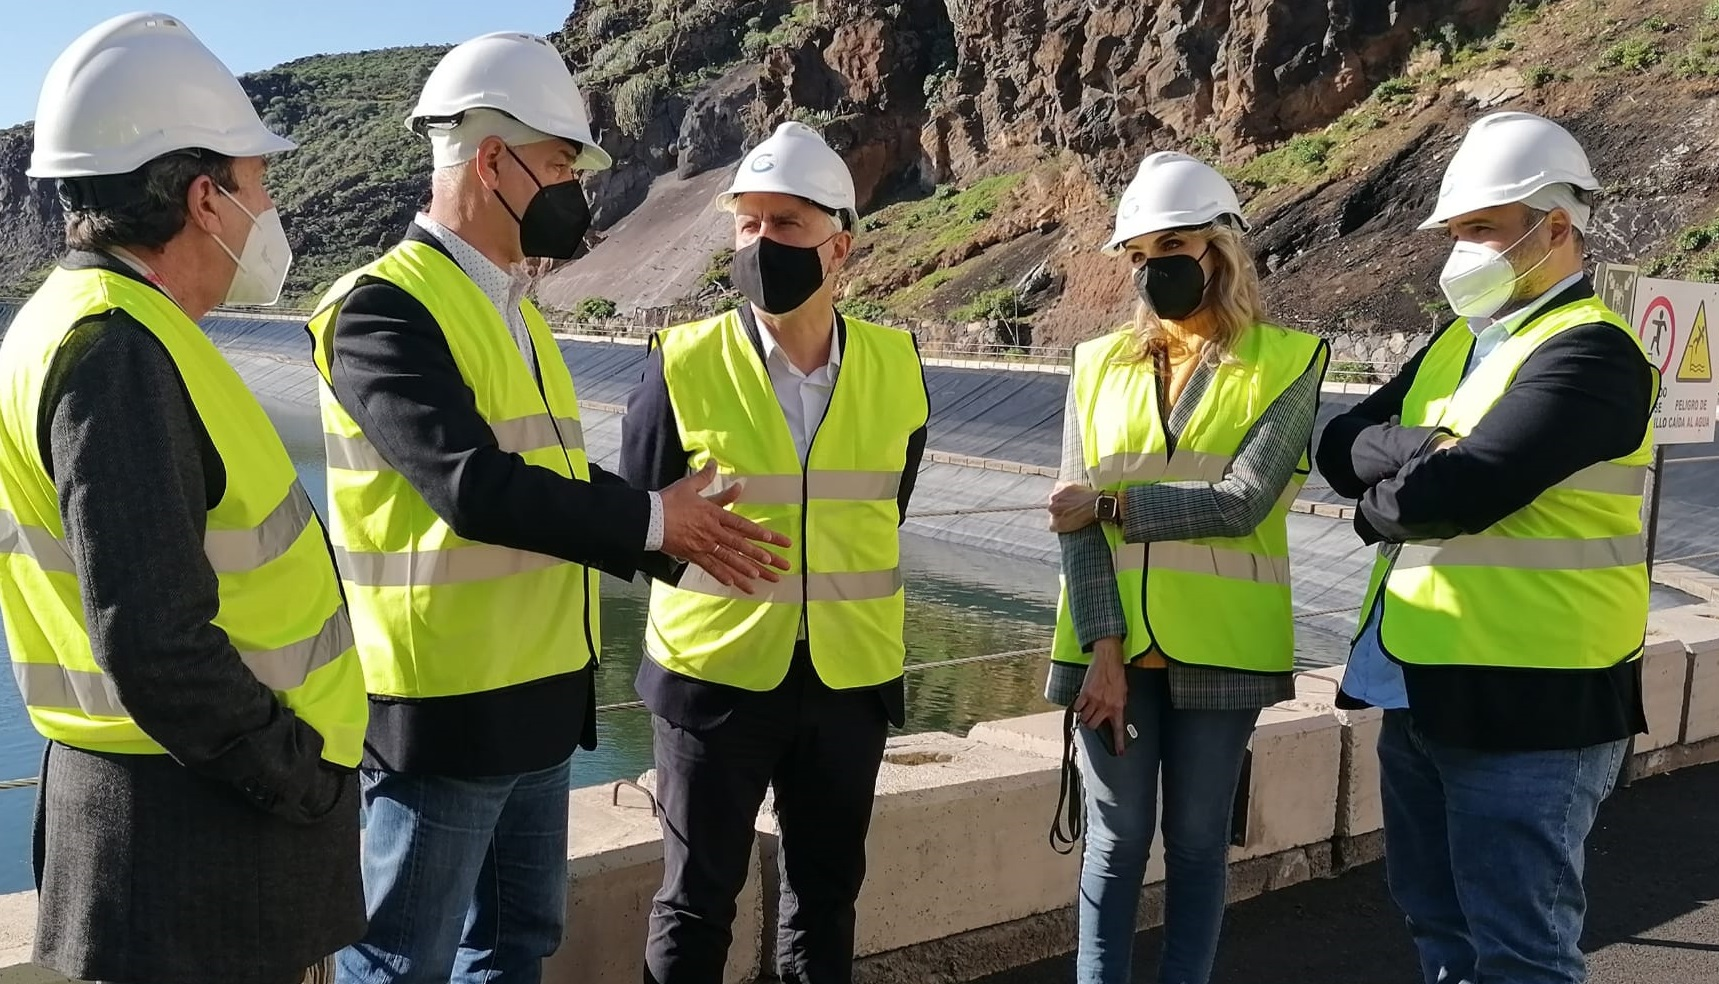 The President of the Government of the Canary Islands, Ángel Víctor Torres, visited the Wind-Pumped Hydro Power Station of El Hierro